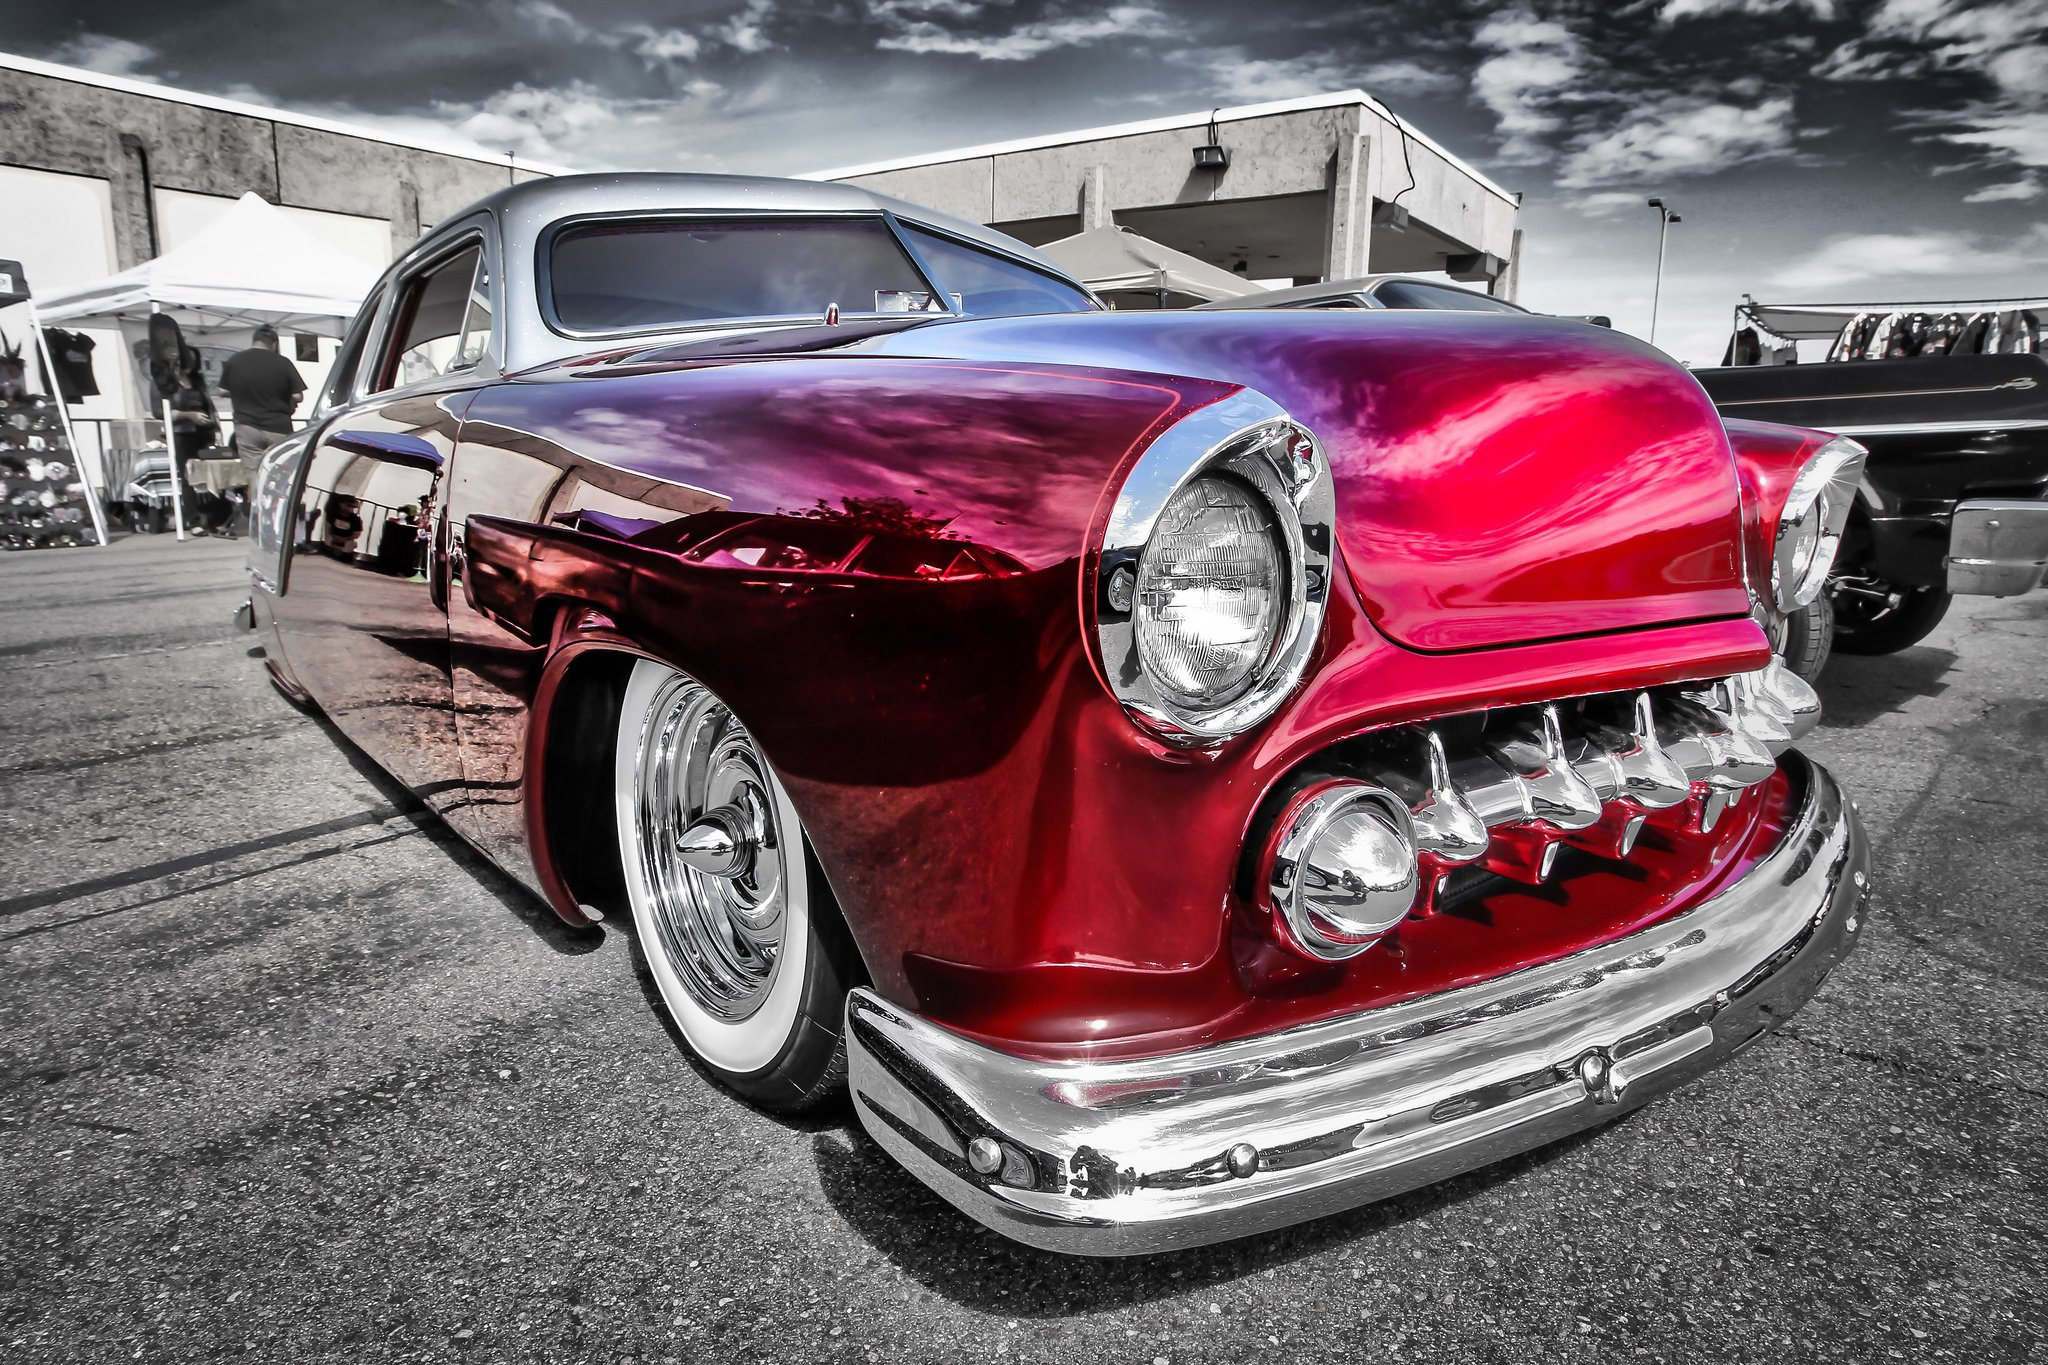 Street-Rod hot-rod custom-cars lo-rider vintage cars usa ...